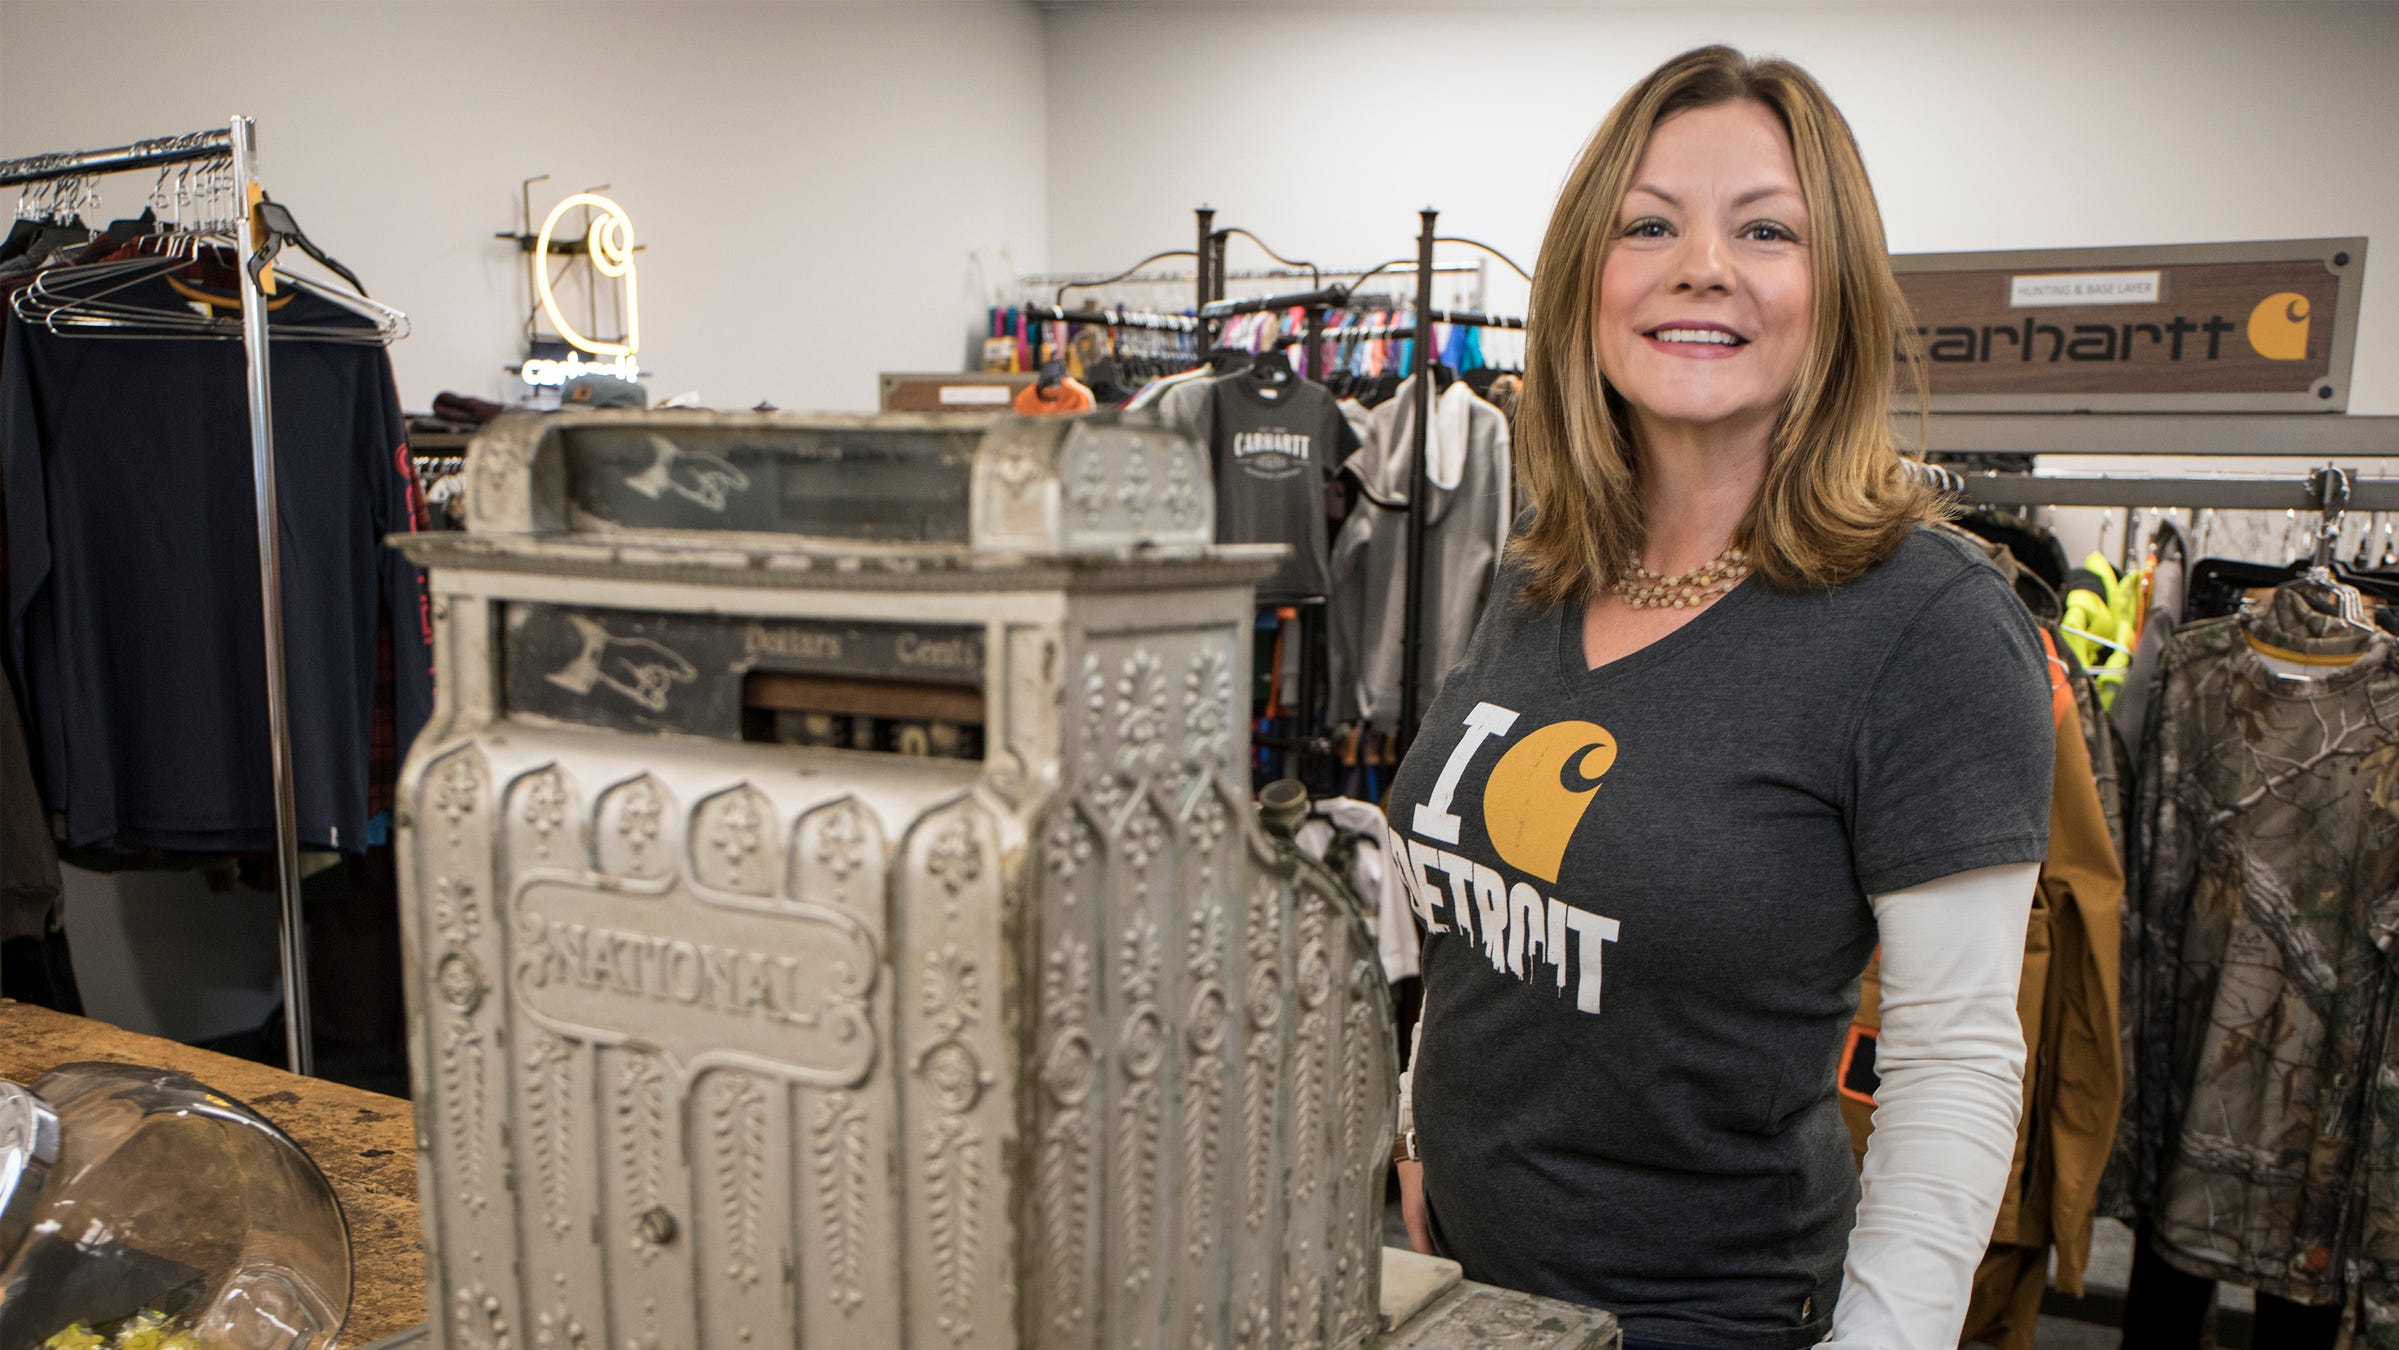 Jamie Cummings, a customer service manager with Carhartt, is thrilled to be able to get $50 a month toward her student loan debt from her employer. Dearborn-based Carhartt is offering a lifetime maximum of $10,000 to qualified employees to pay down college loans.